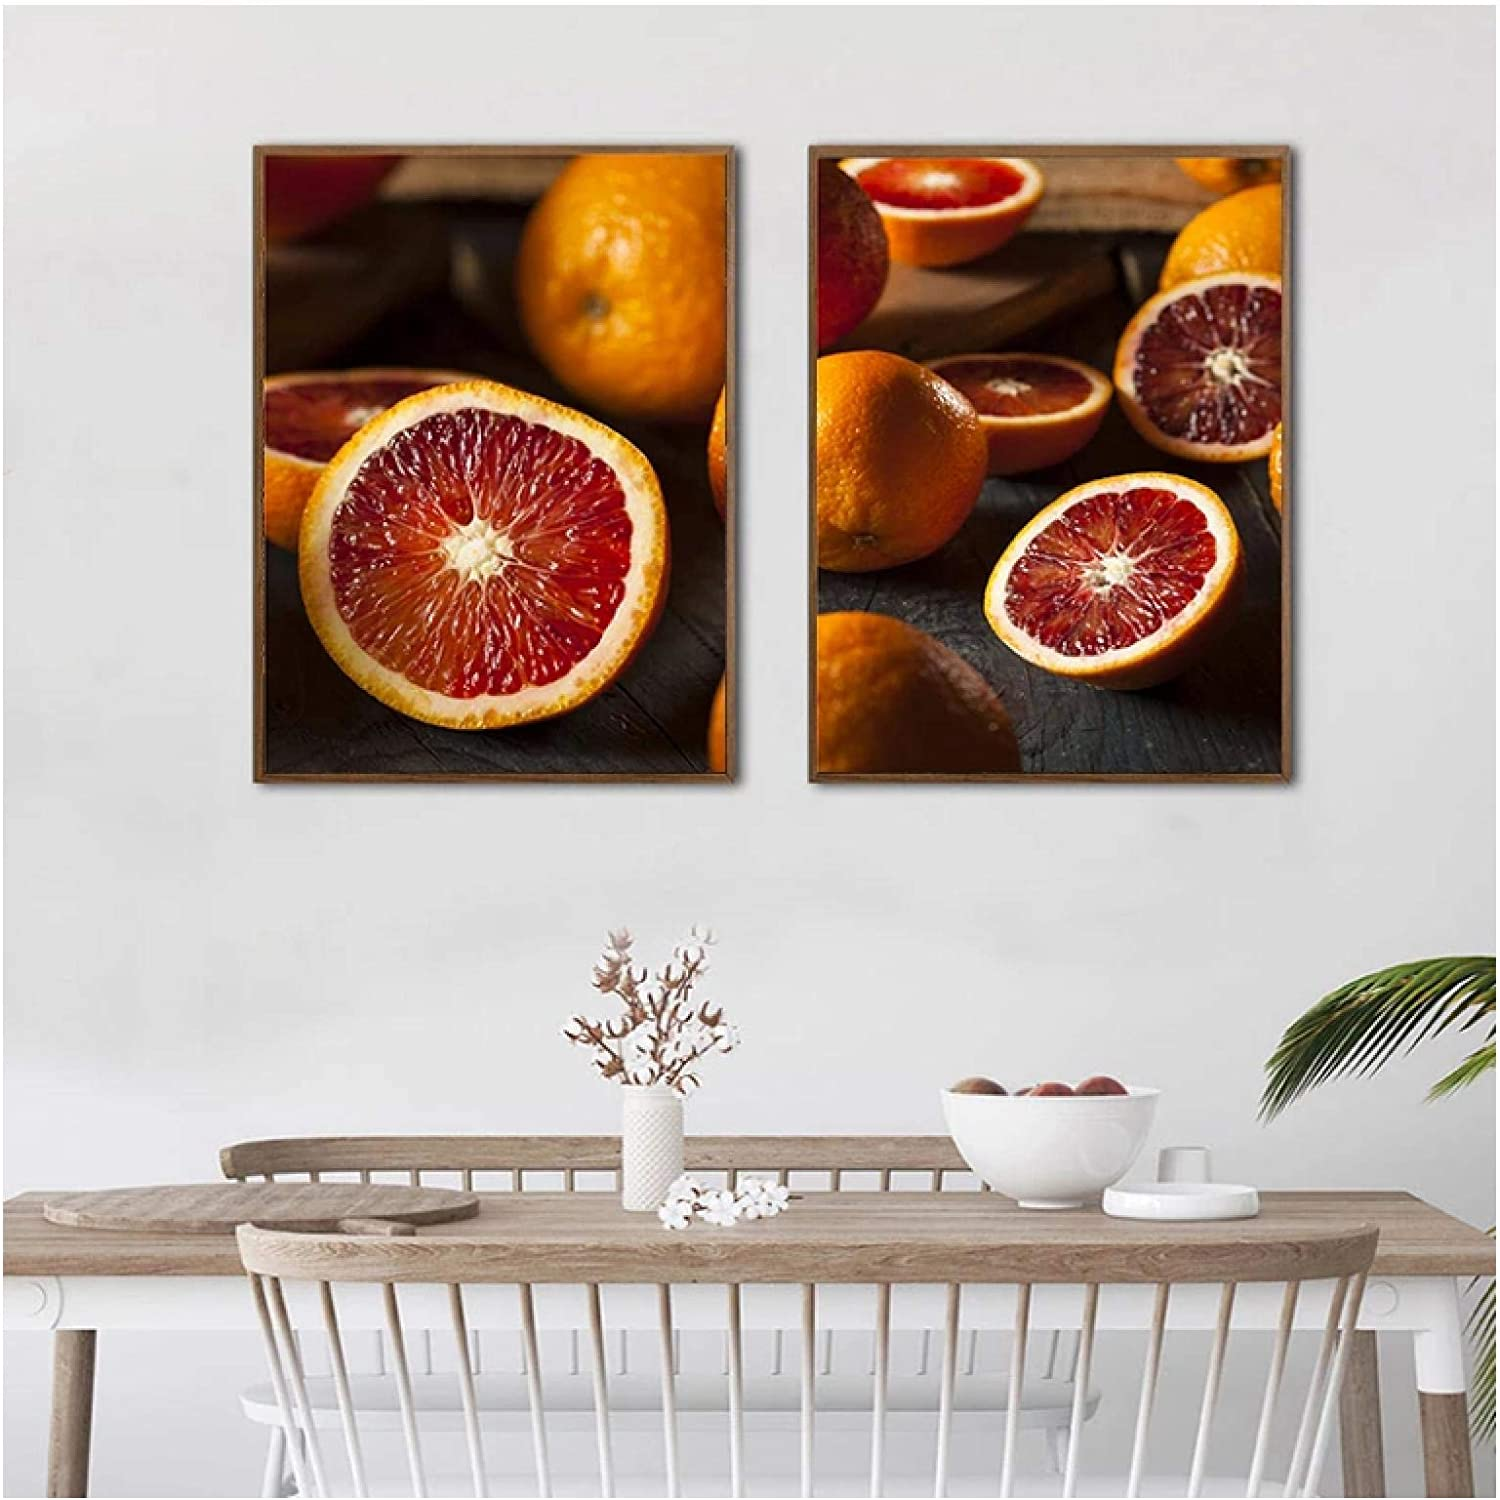 Food Poster and Fruit Organic Raw Red Blood Oranges Canvas Painting Wall Art Picture Kitchen Dining Room Decor Picture-40X60cmx2 Frameless